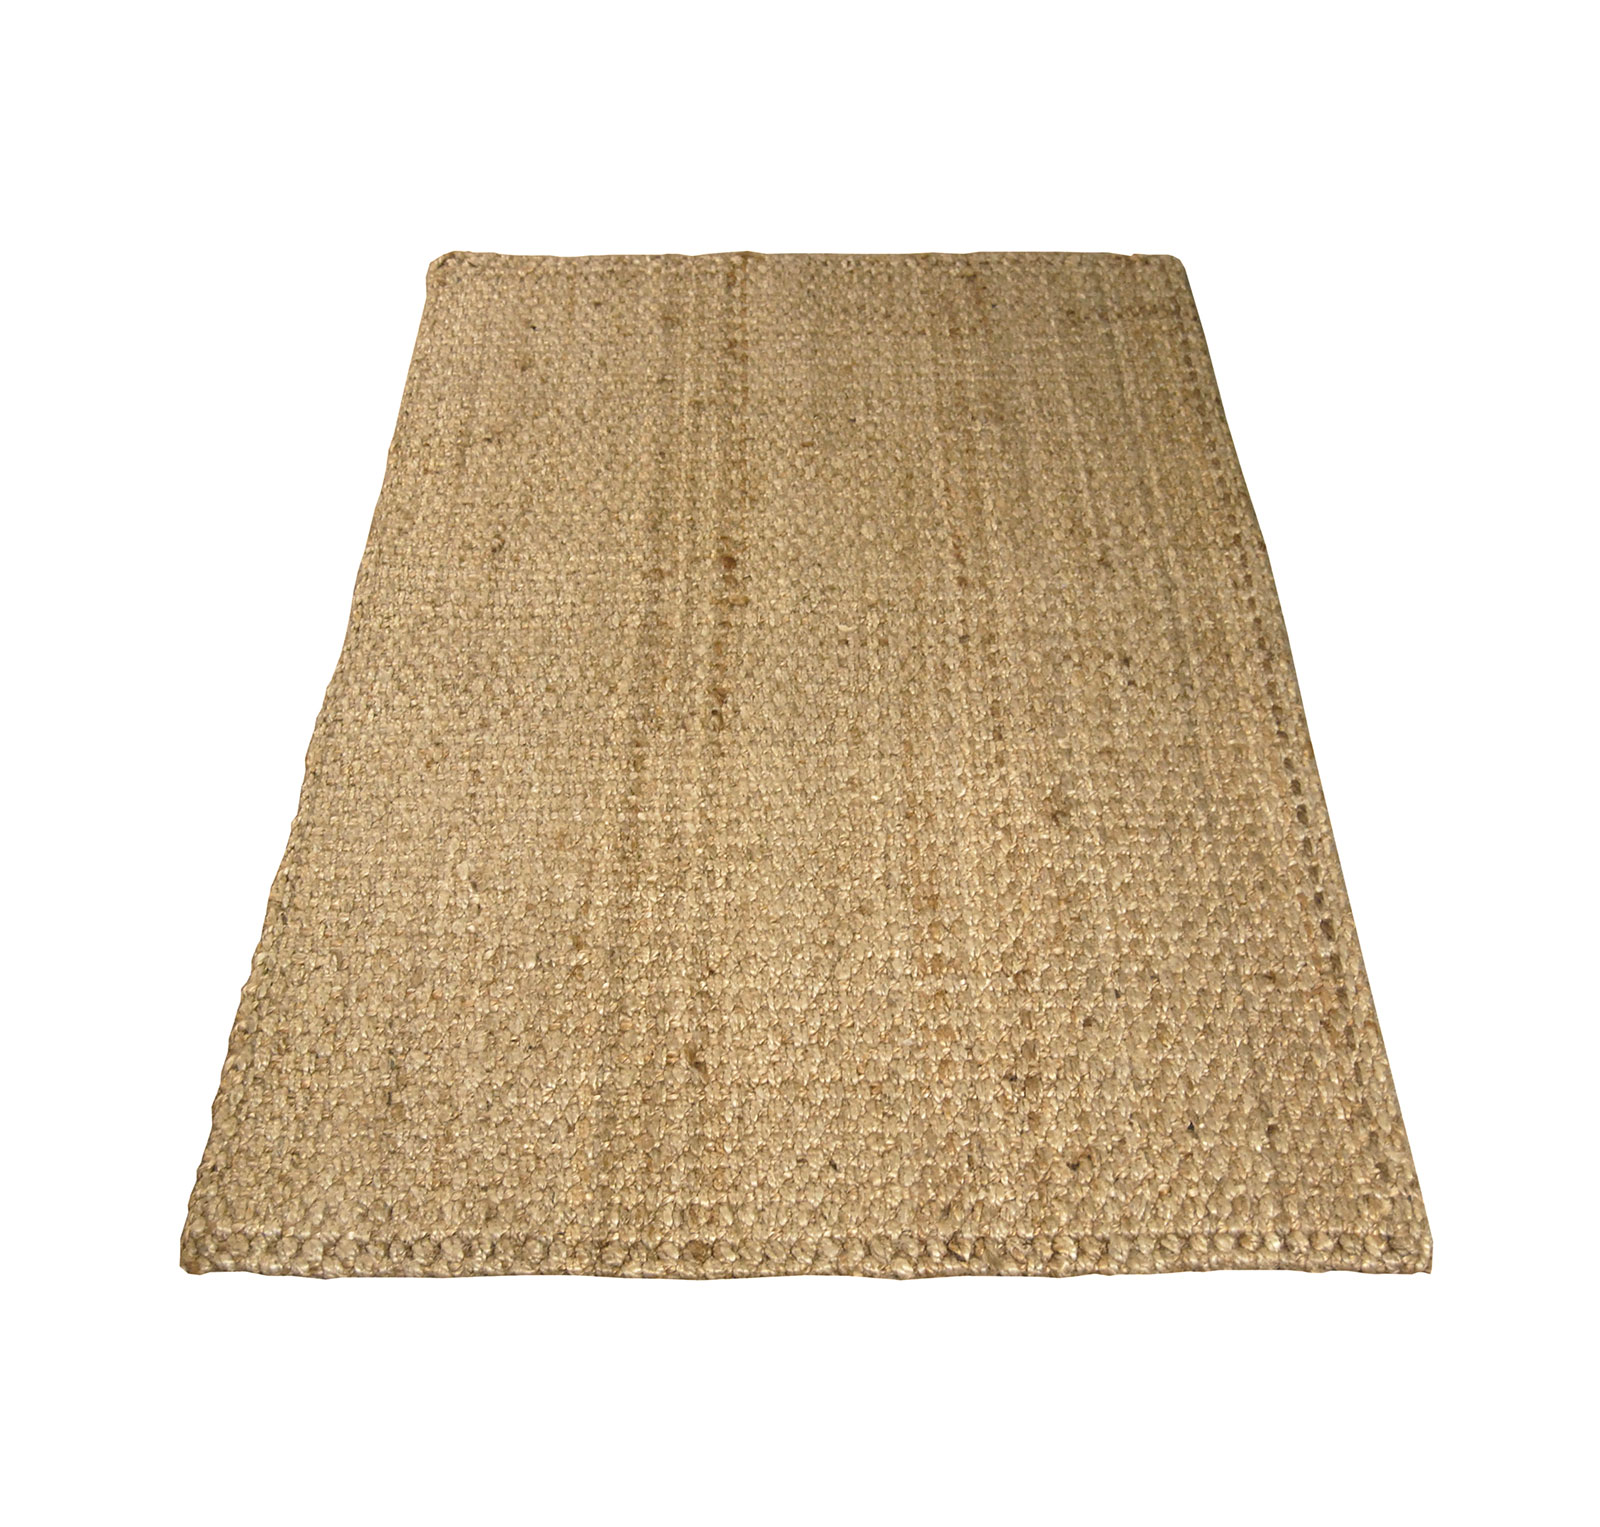 Charles Bentley 100x150cm 100 Natural Jute Rug Hallway